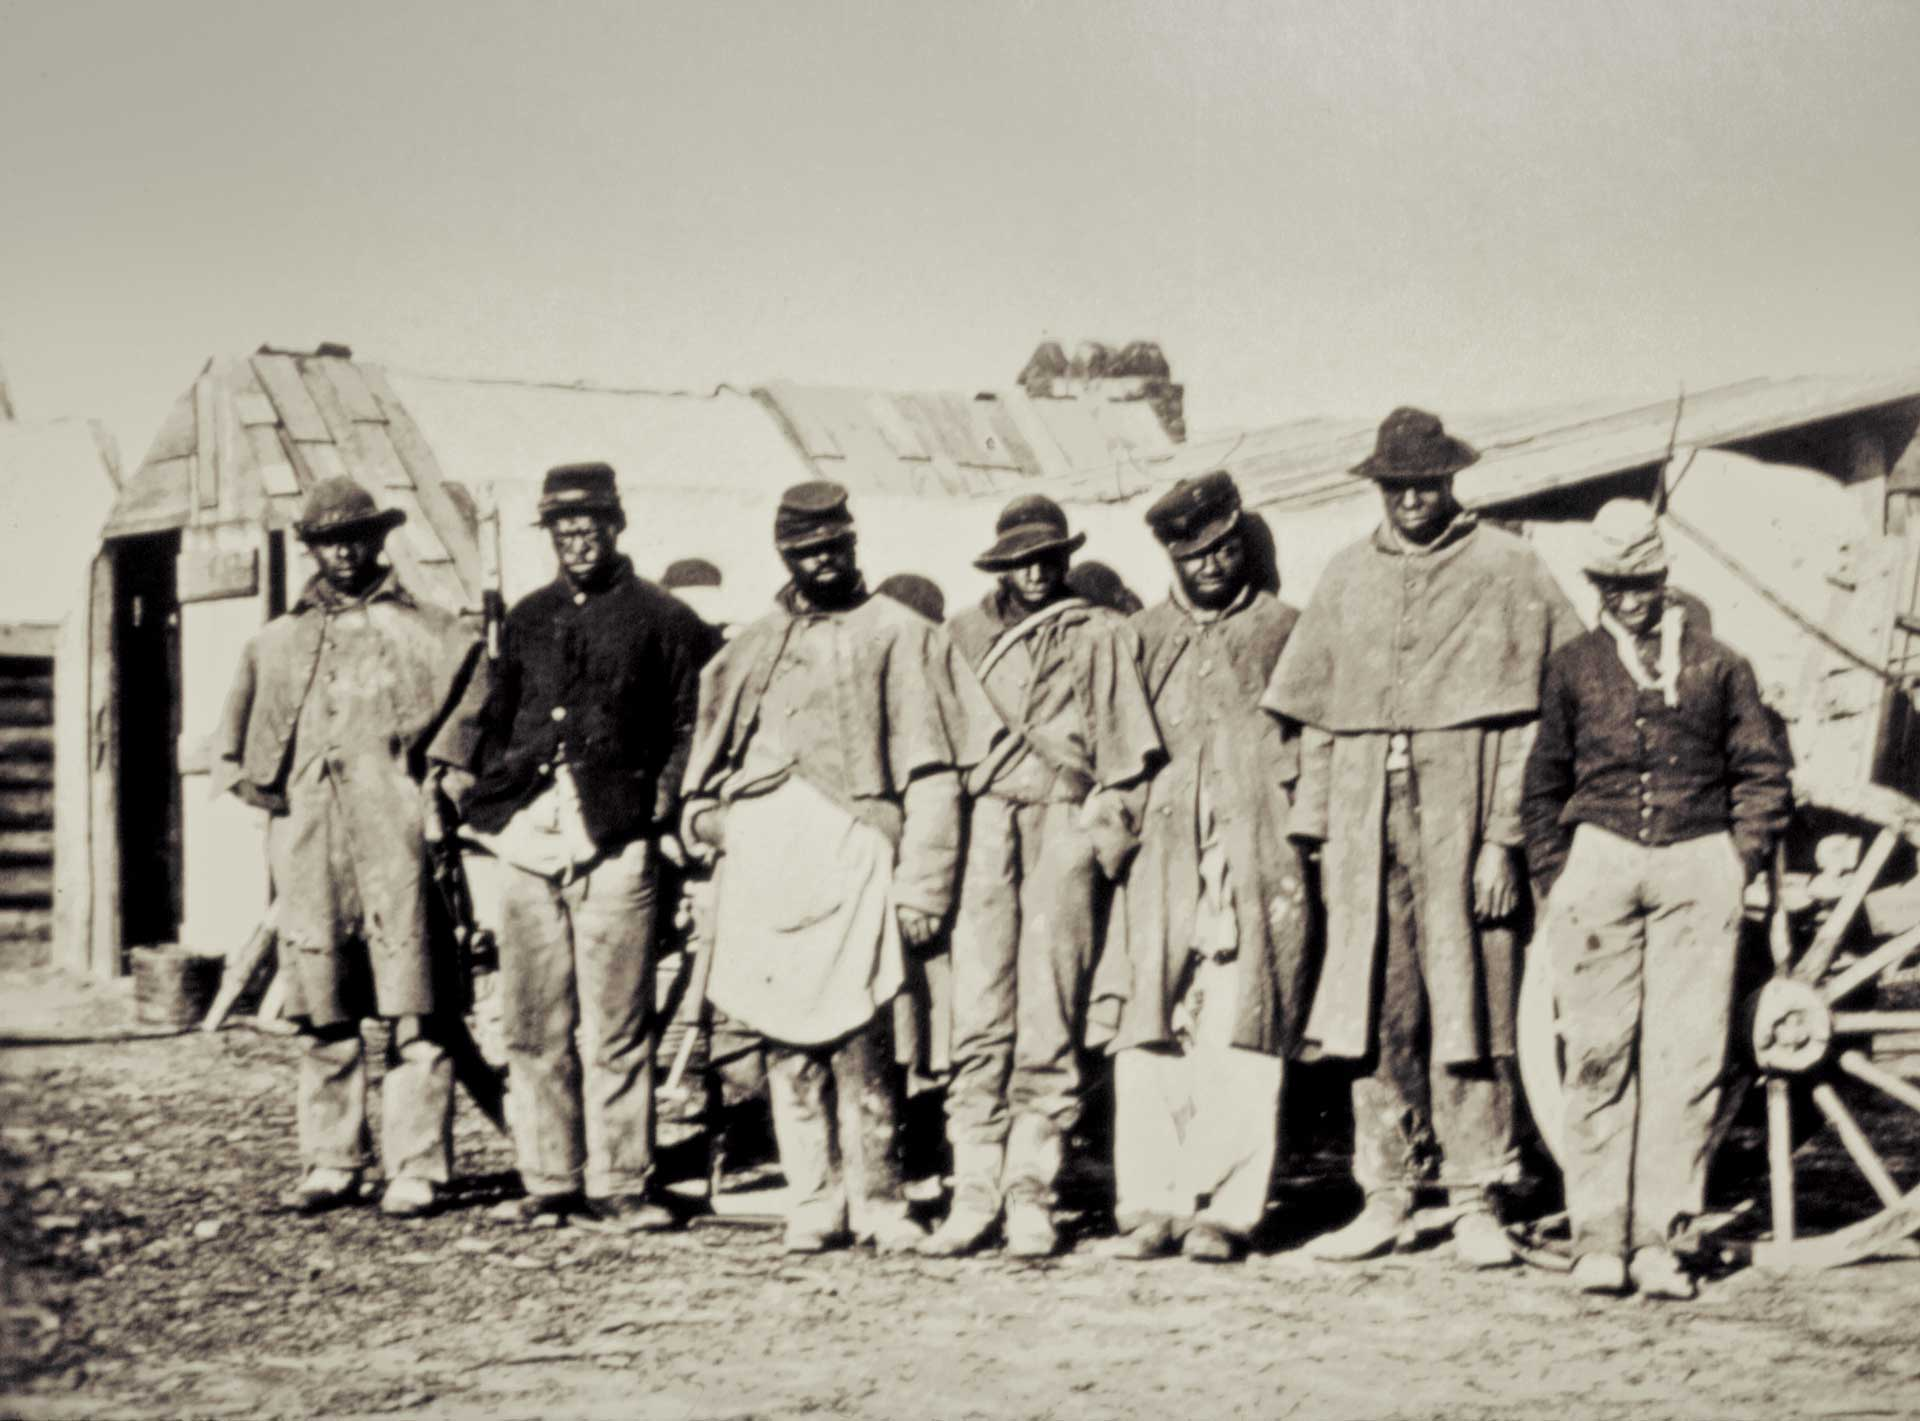 Behind the Lens | Slavery and the Civil War